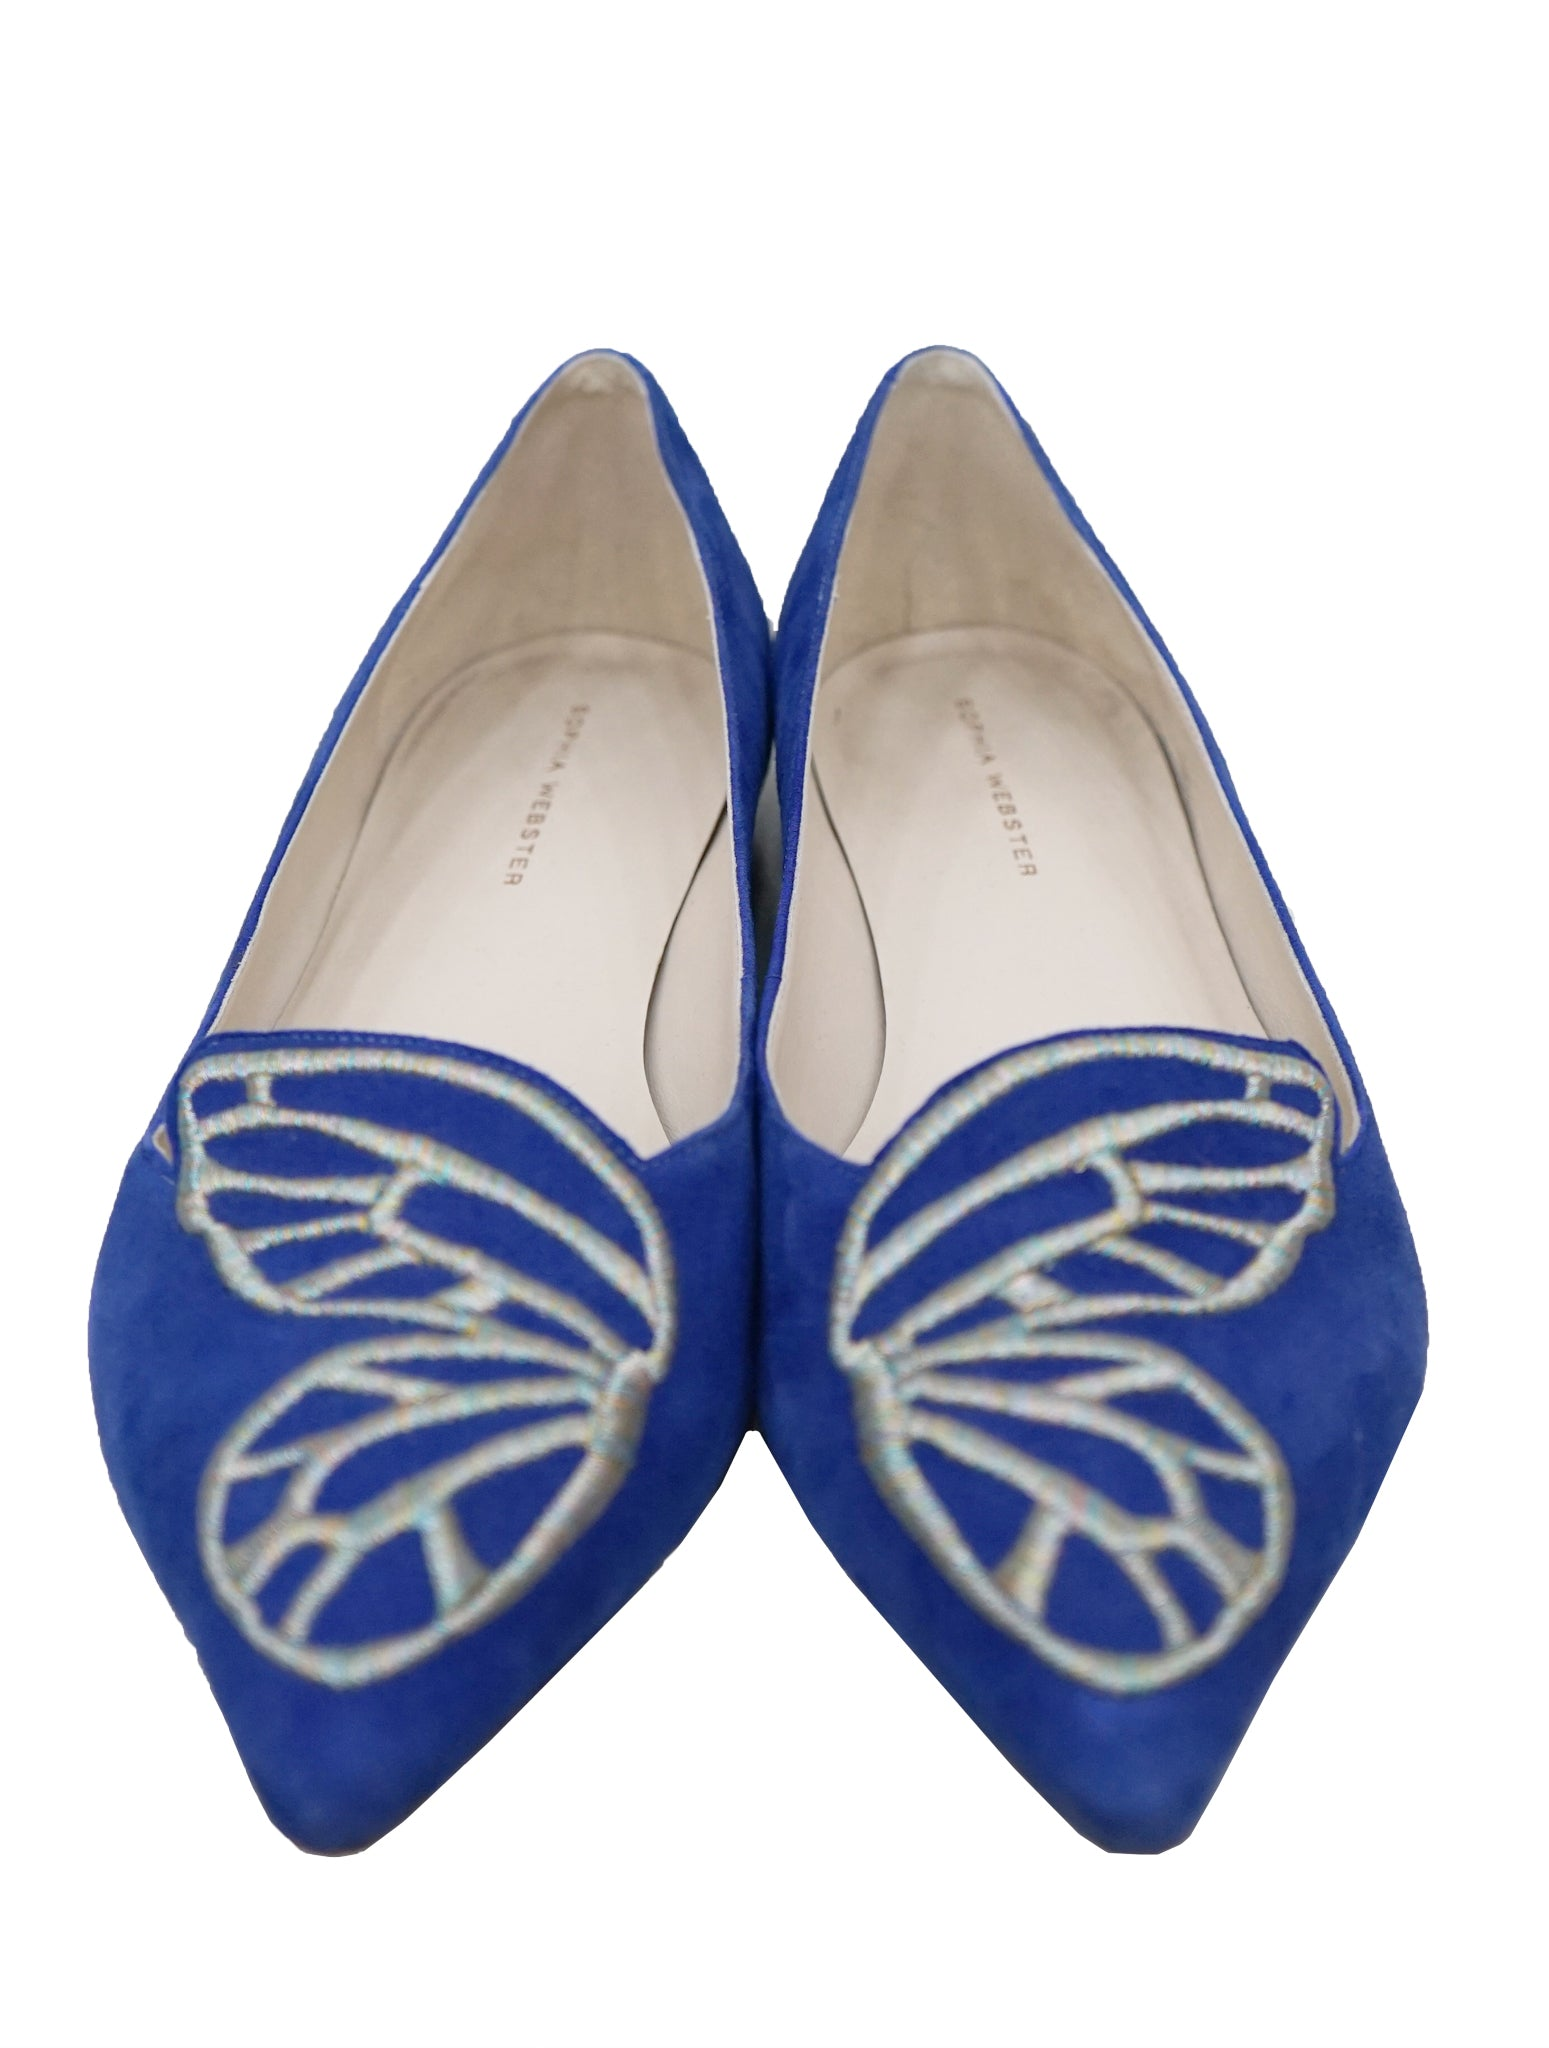 EMBROIDERED SUEDE BIBI BUTTERFLY FLATS